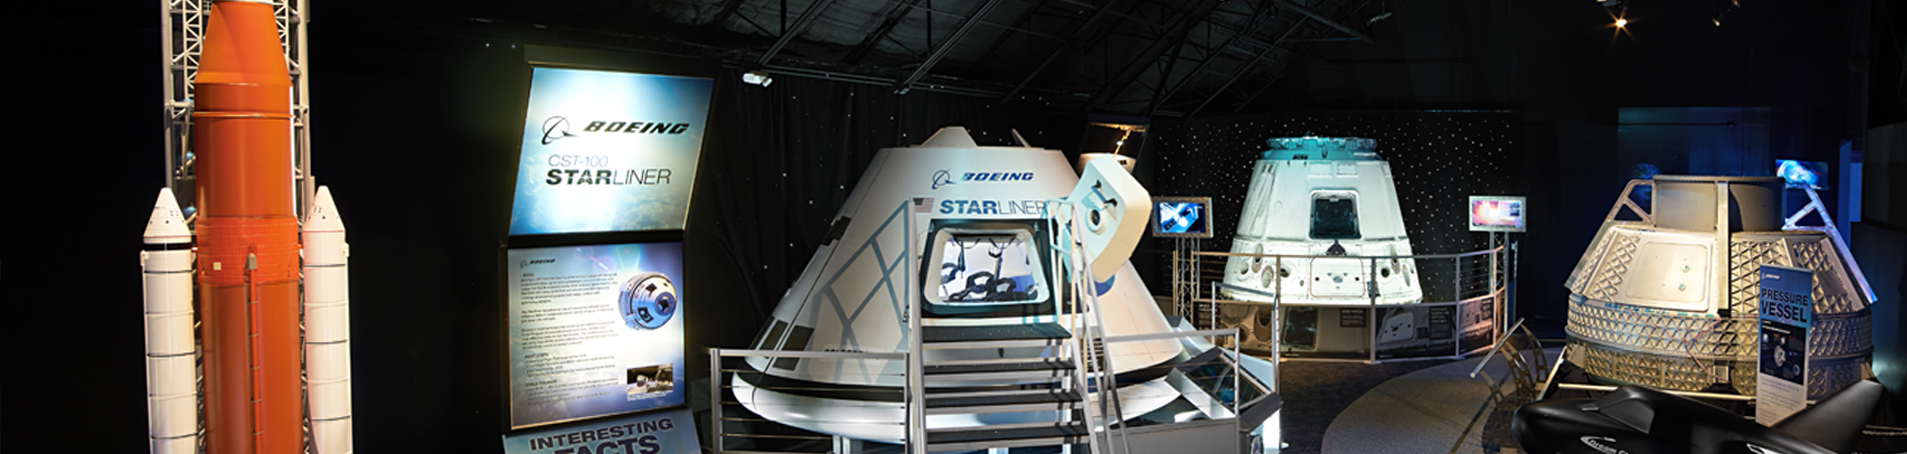 The NASA Now exhibit include a model of the Space Launch System, the Boeing CSt-100 Starliner, SpaceX Dragon Cargo Vehicle and more.